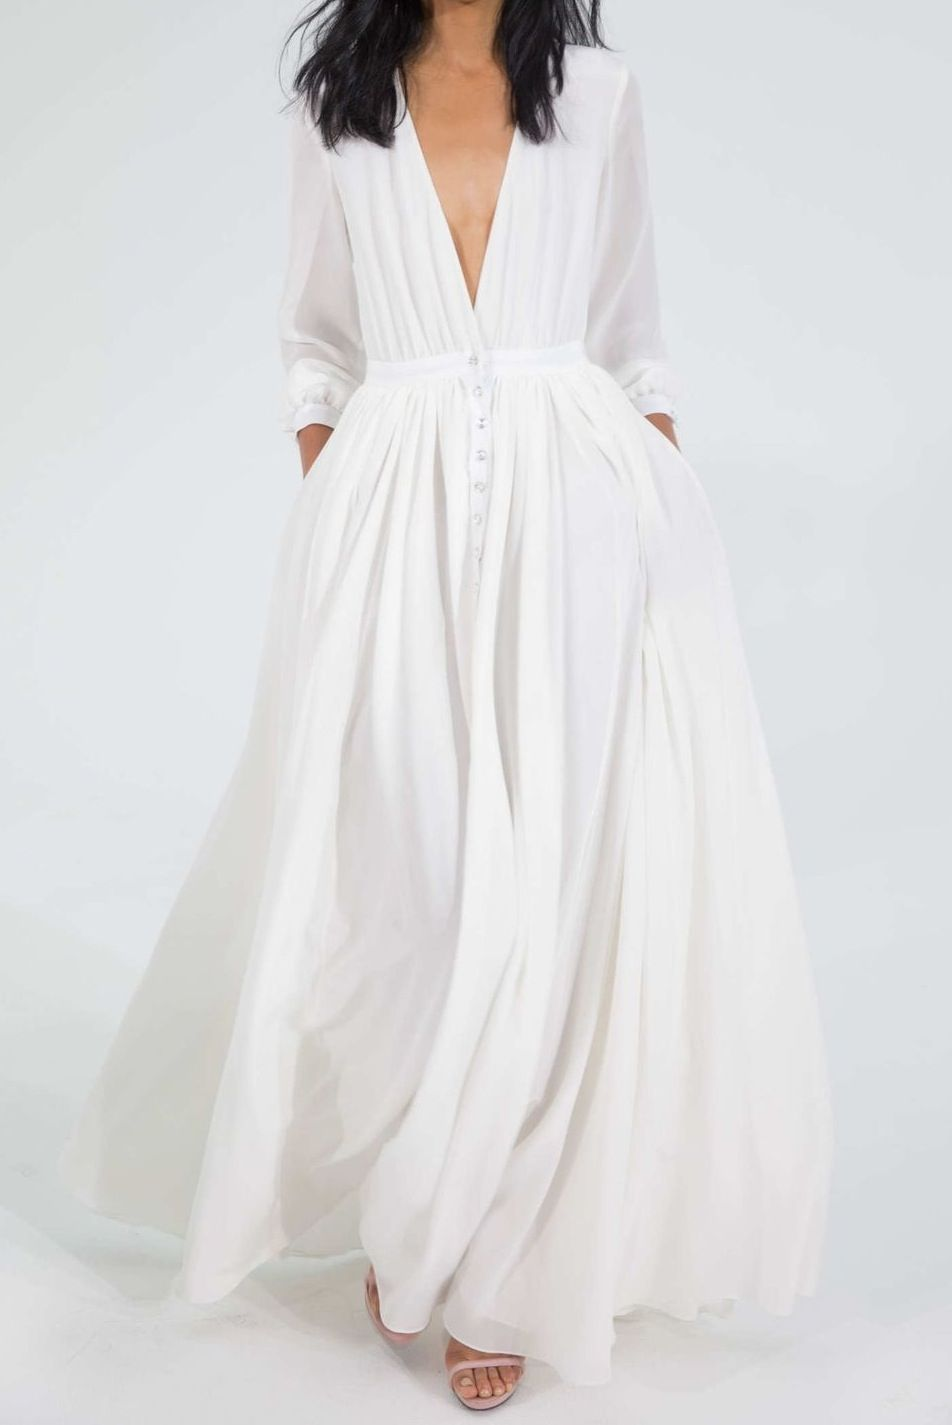 Magnifique hijab outfit pinterest minimal classic white and